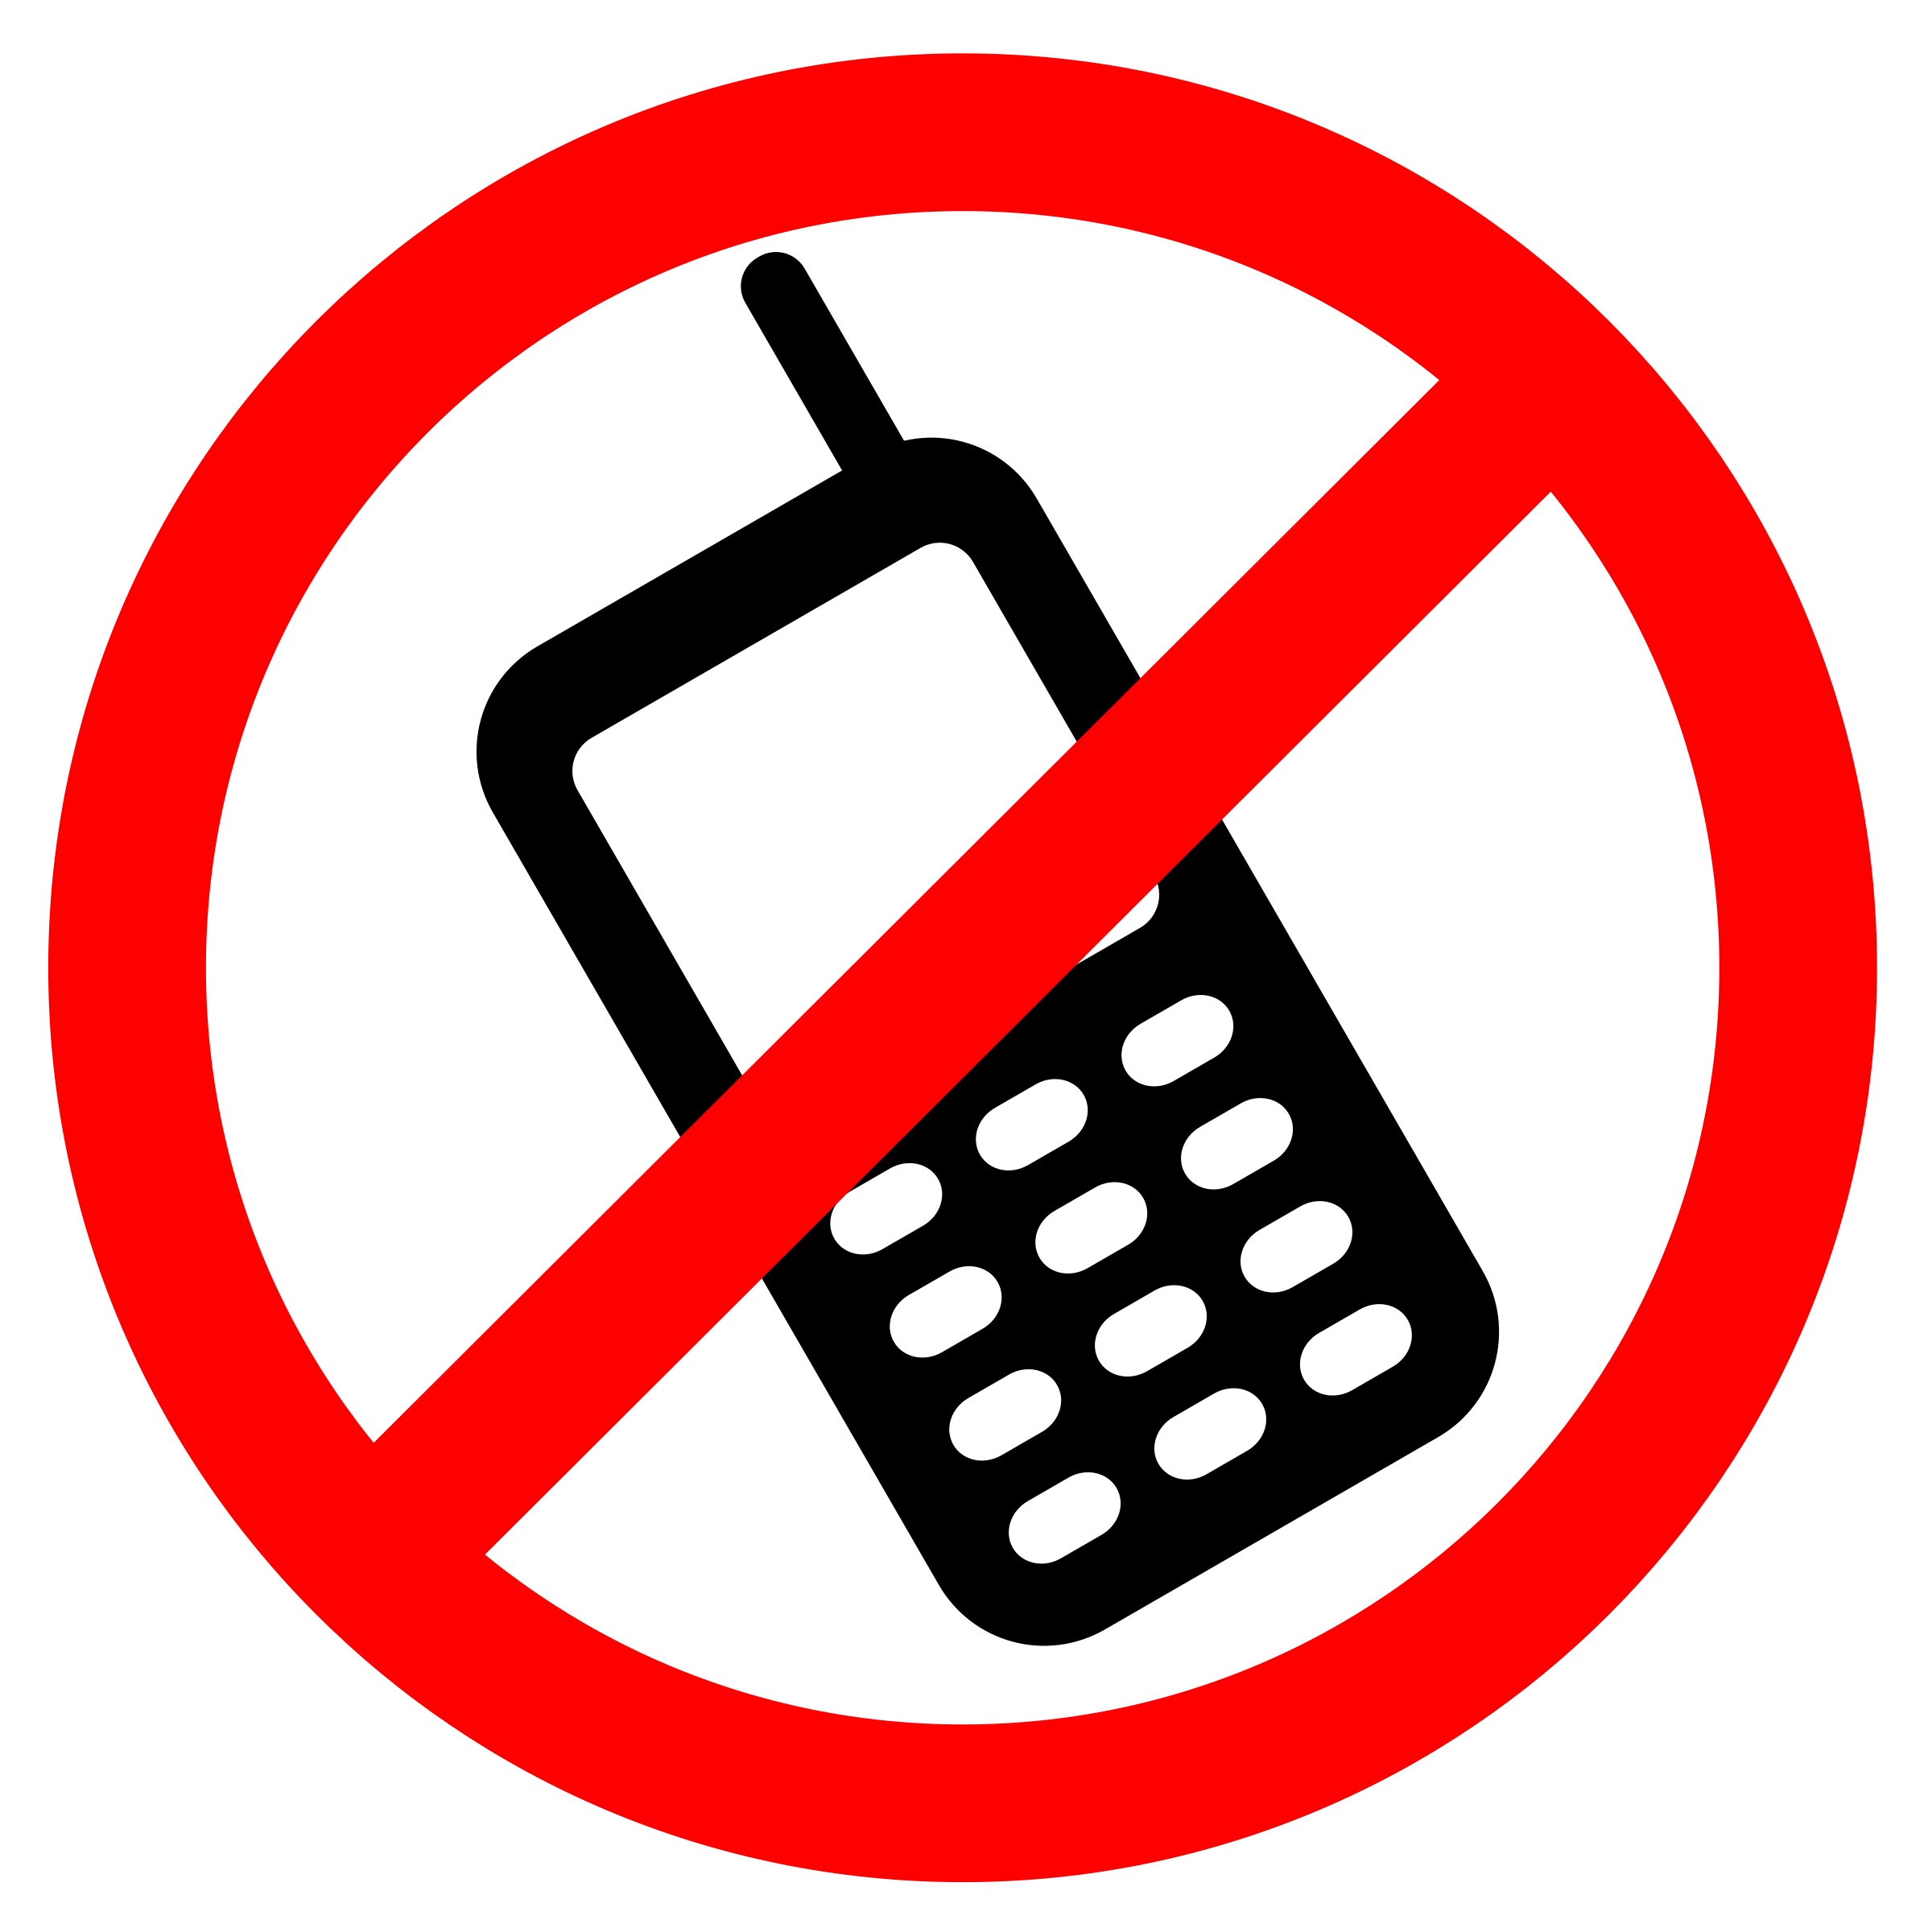 No Cell Phones Allowed by taber